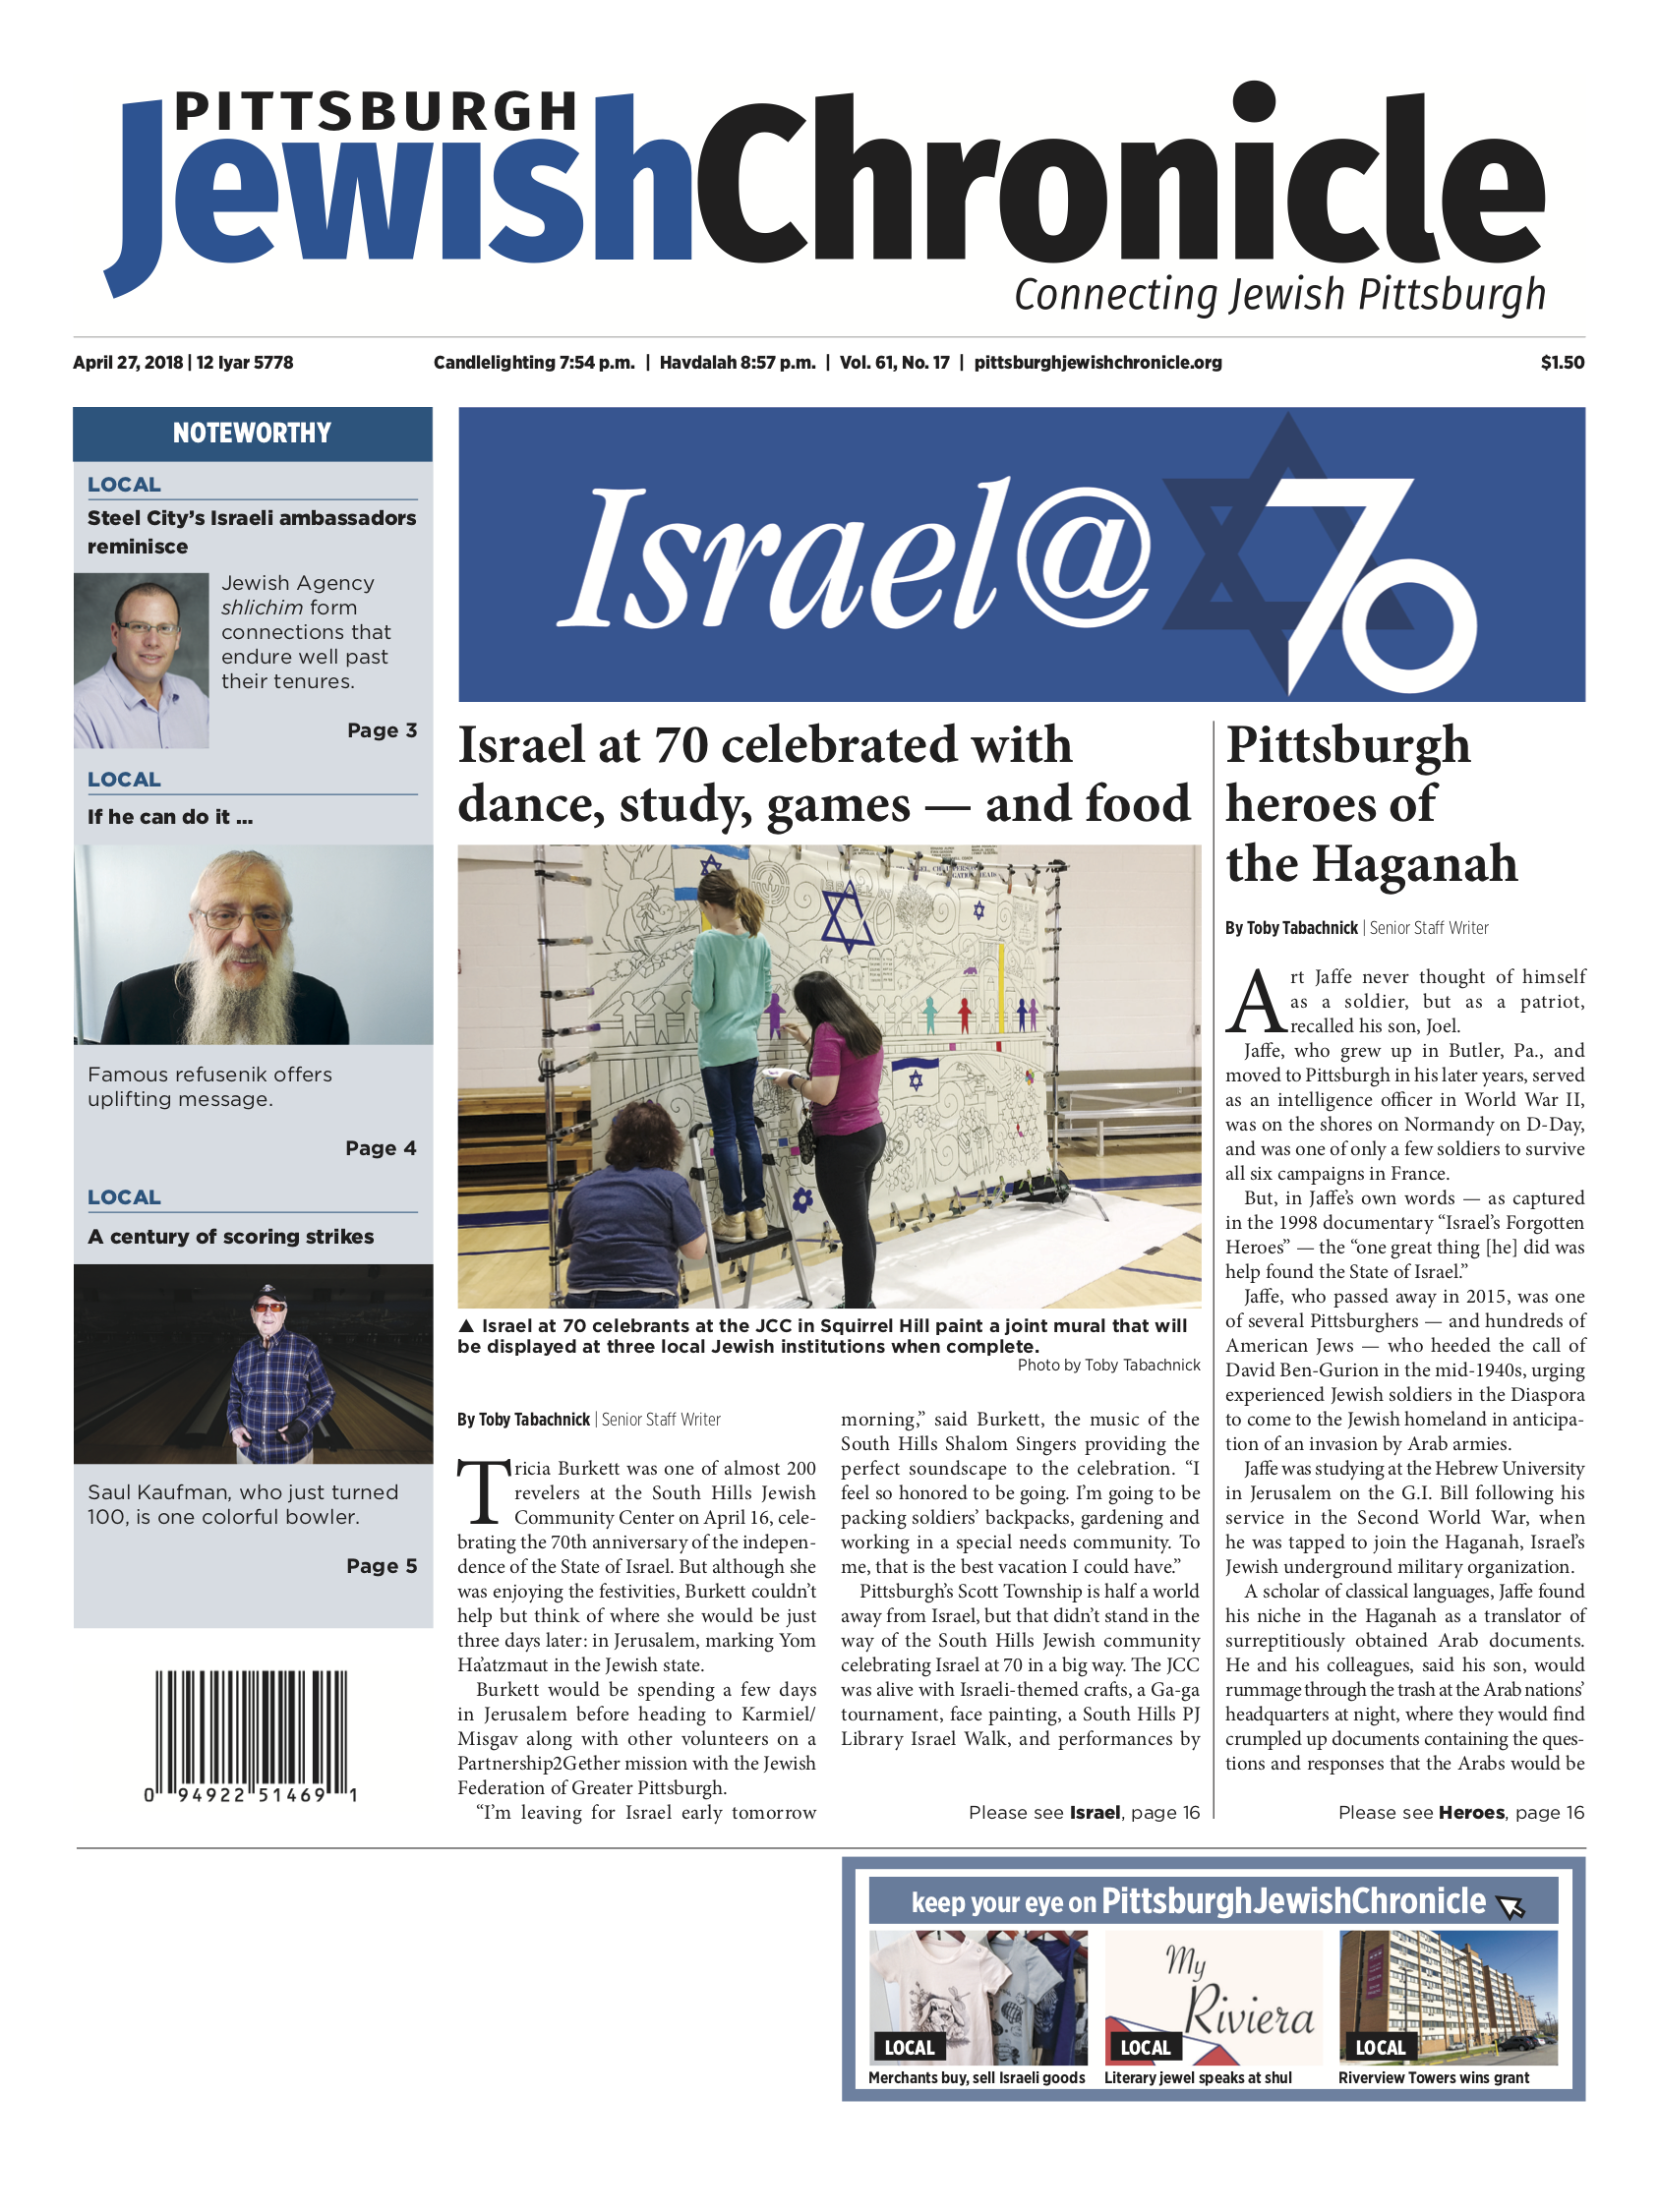 Pittsburgh Jewish Chronicle 4/27/2018